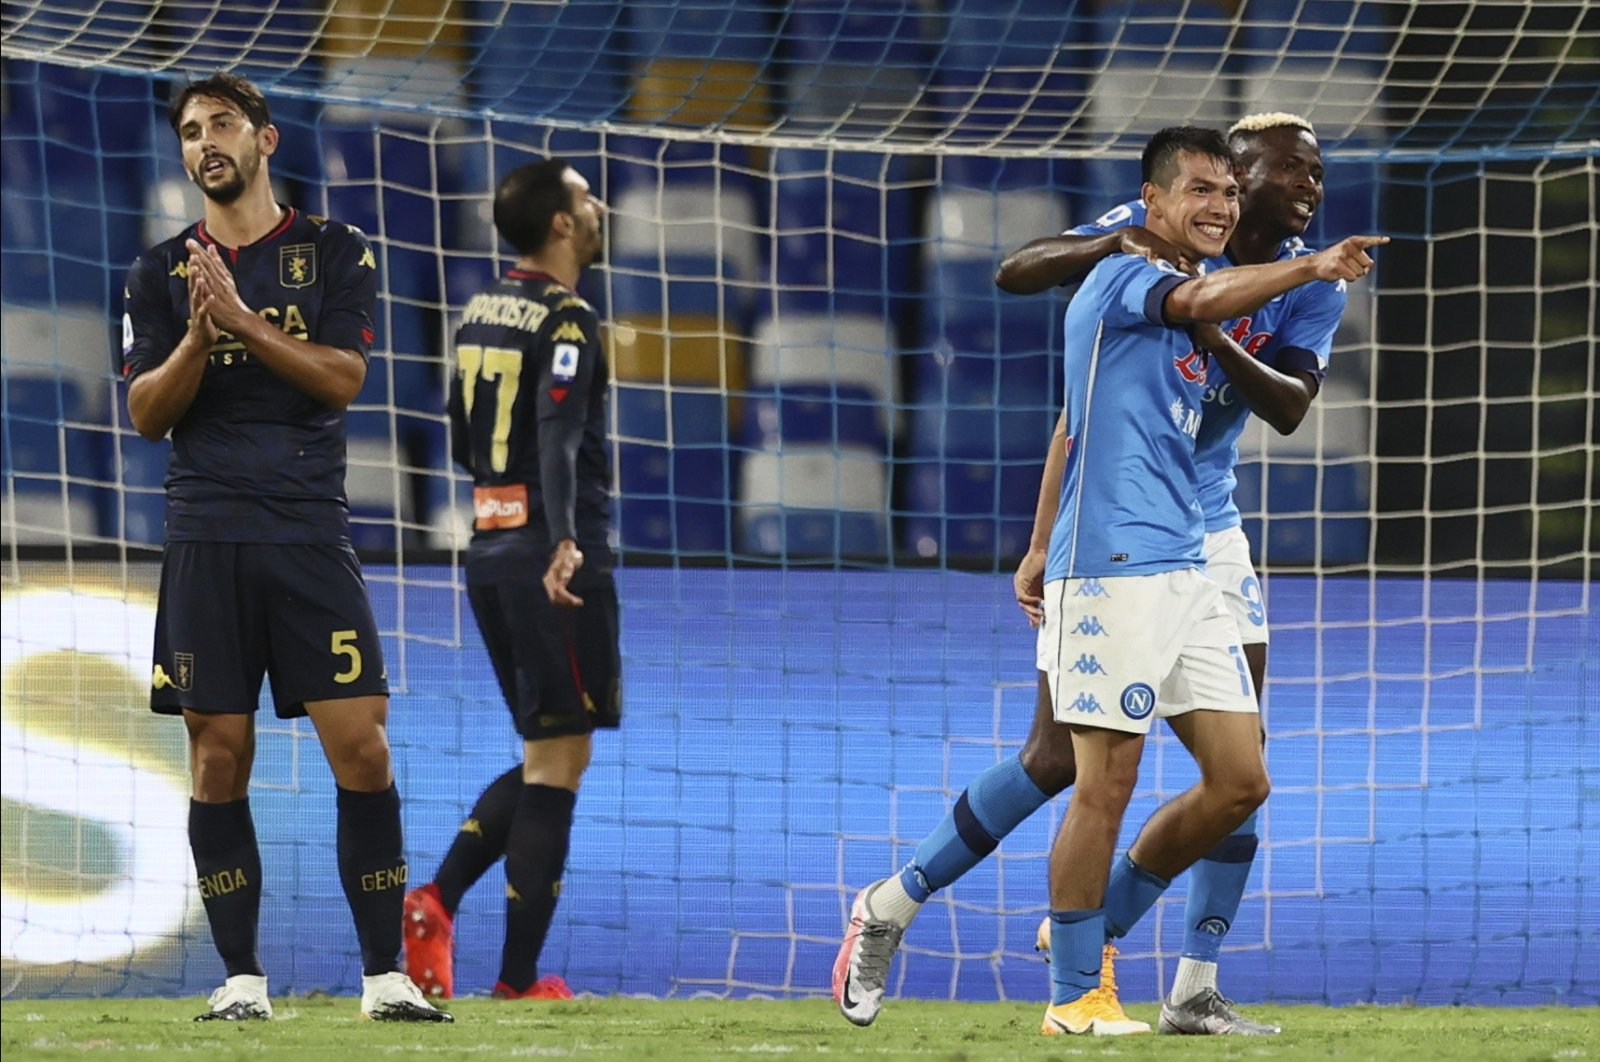 Napoli's Hirving Lozano, second from right, celebrates with Victor Osimhen after scoring his side's 4th goal during the Serie A football match between Napoli and Genoa at the San Paolo Stadium in Naples, Italy, Sept. 27, 2020. (LaPresse via AP)